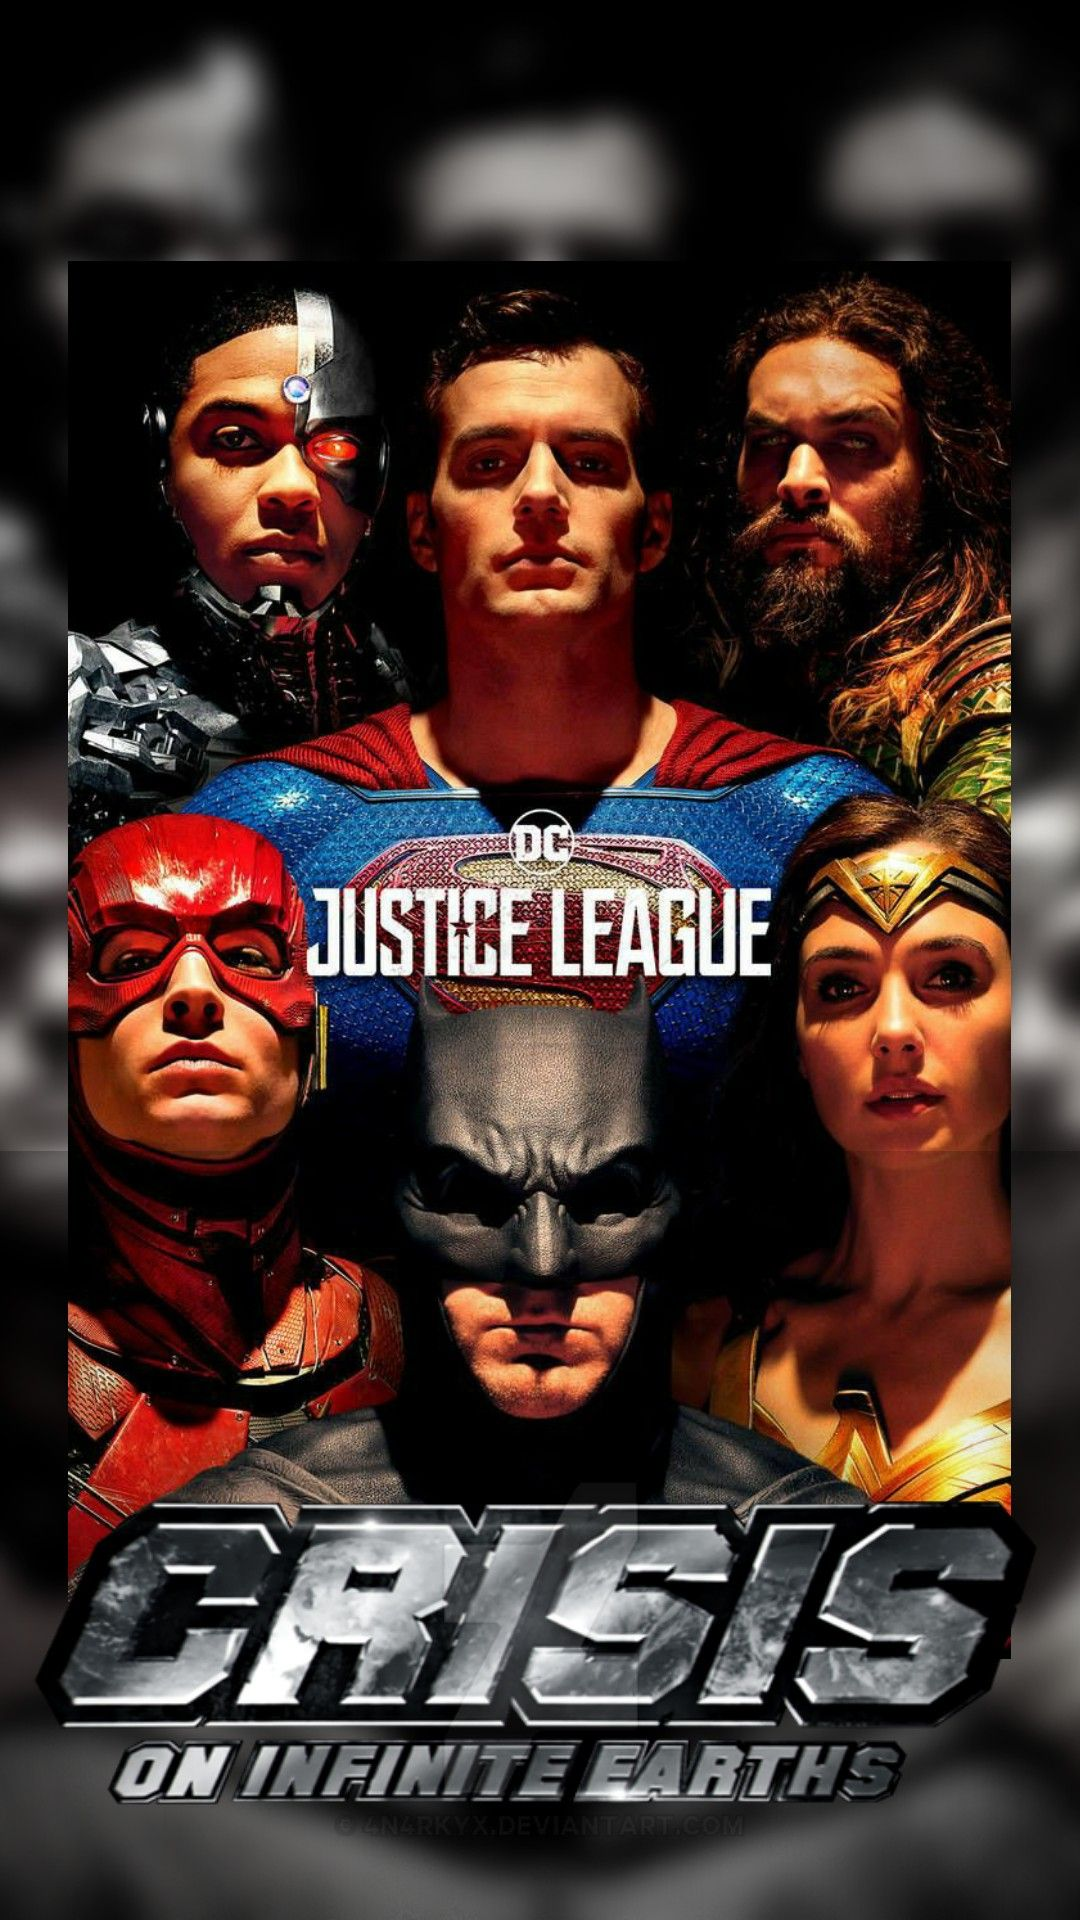 Crisis On Infinite Earths In 2021 Justice League 2017 Justice League Movie Posters